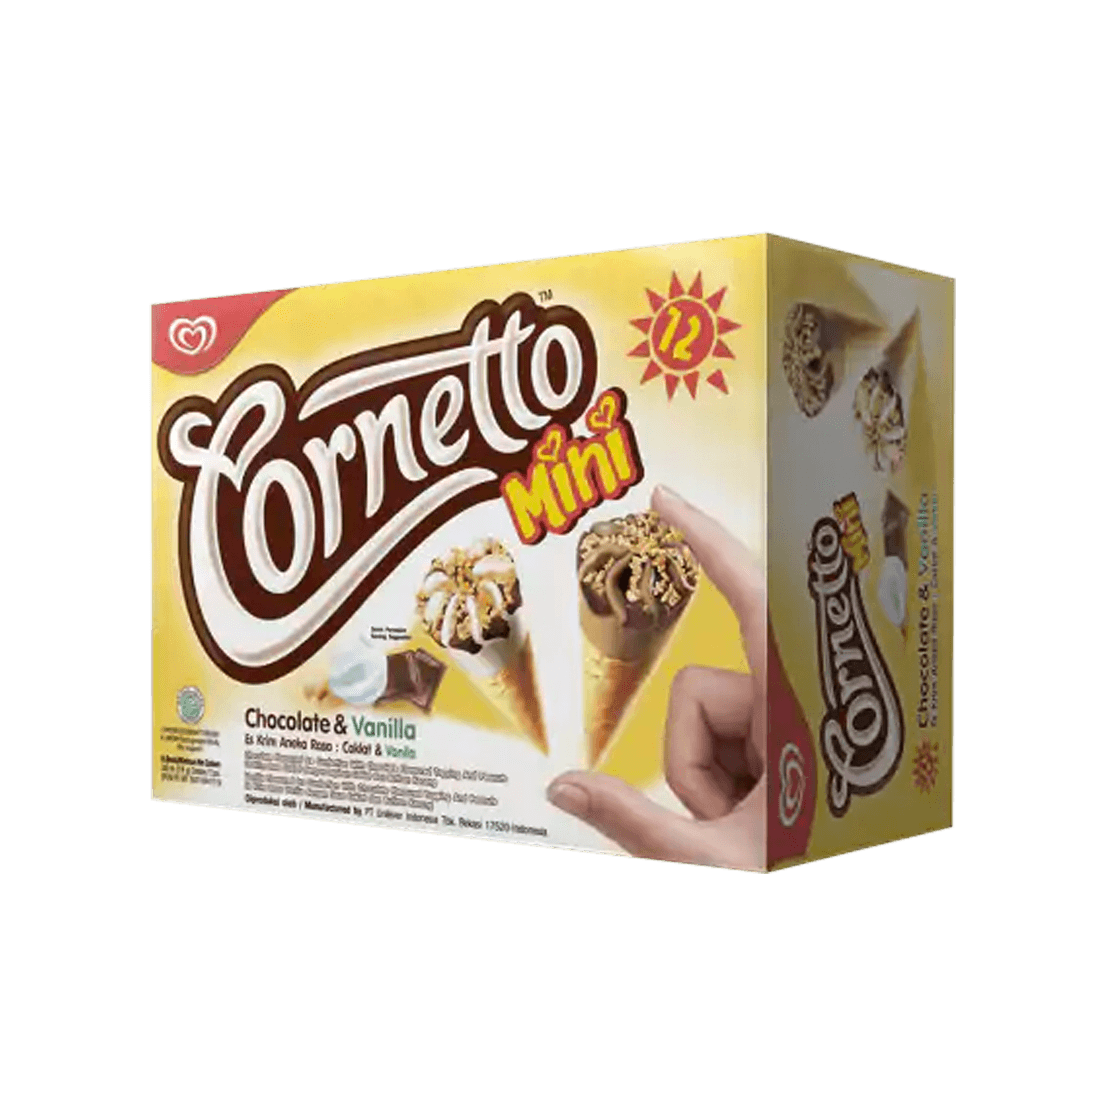 https://escreamwalls.com/wp-content/uploads/2019/04/Cornetto-Mini.png